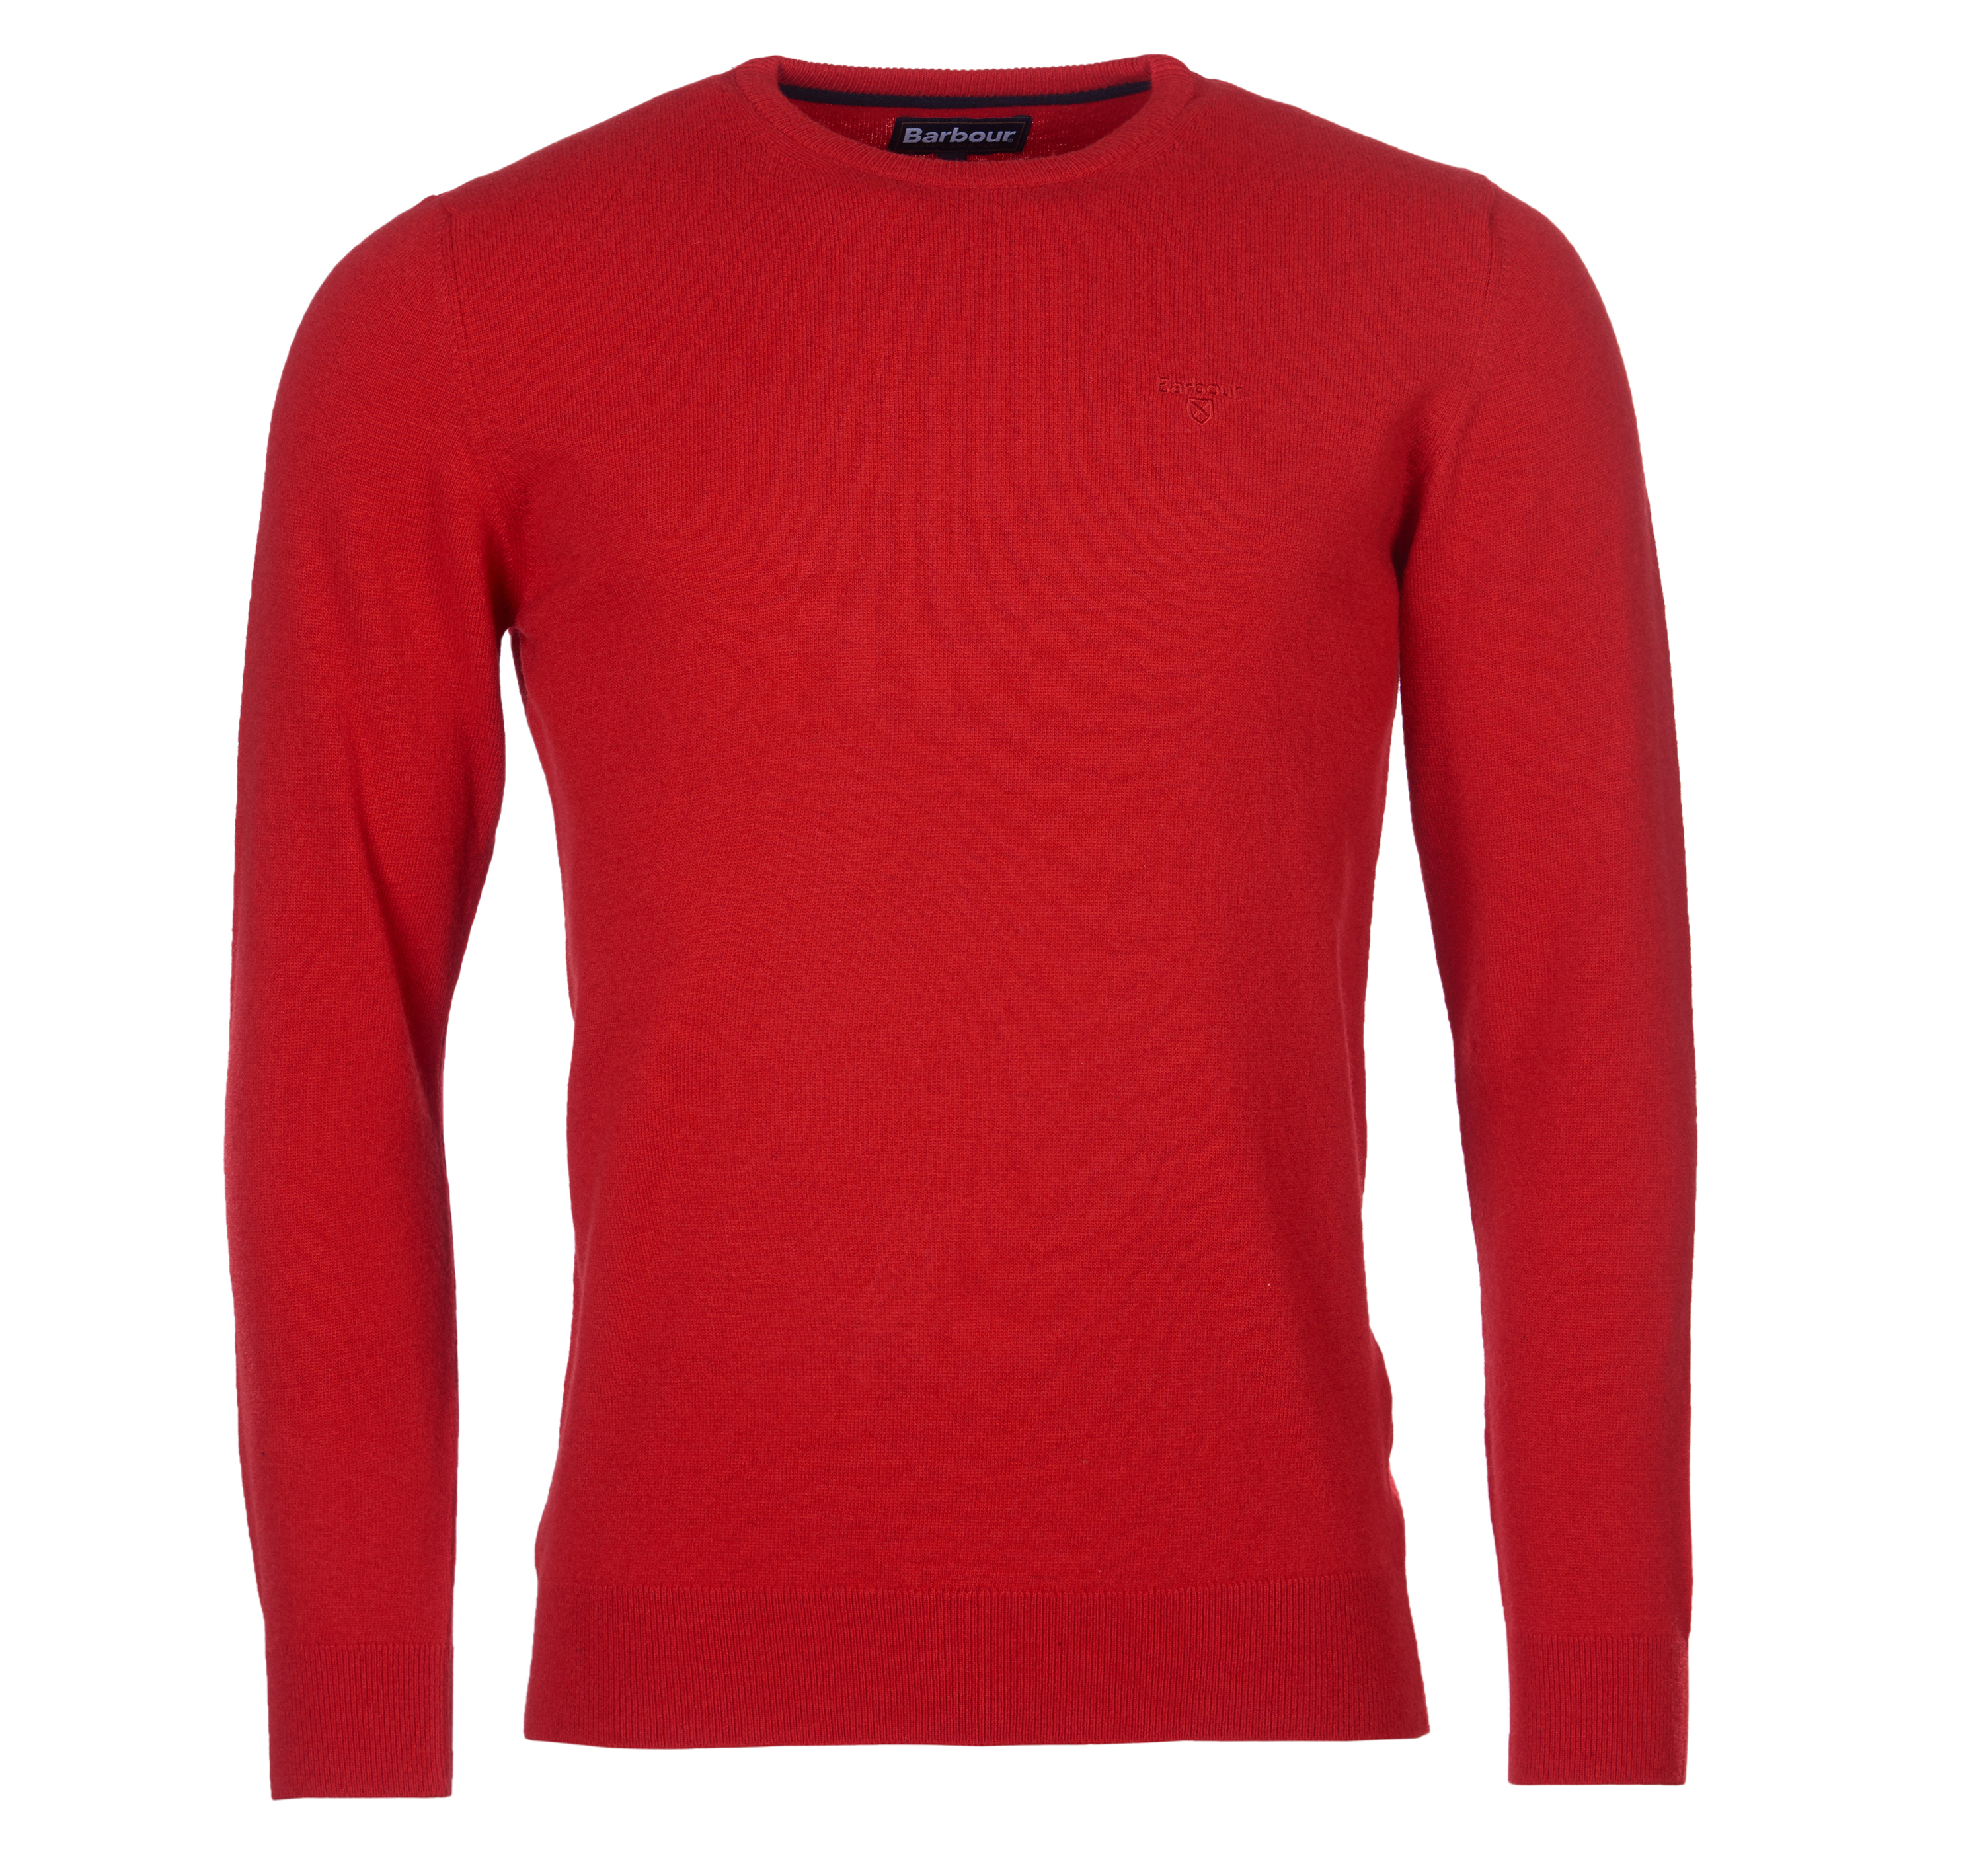 Barbour Essential Lambswool Crew Sweater Chilli Red Barbour Lifestyle: from the Classic capsule